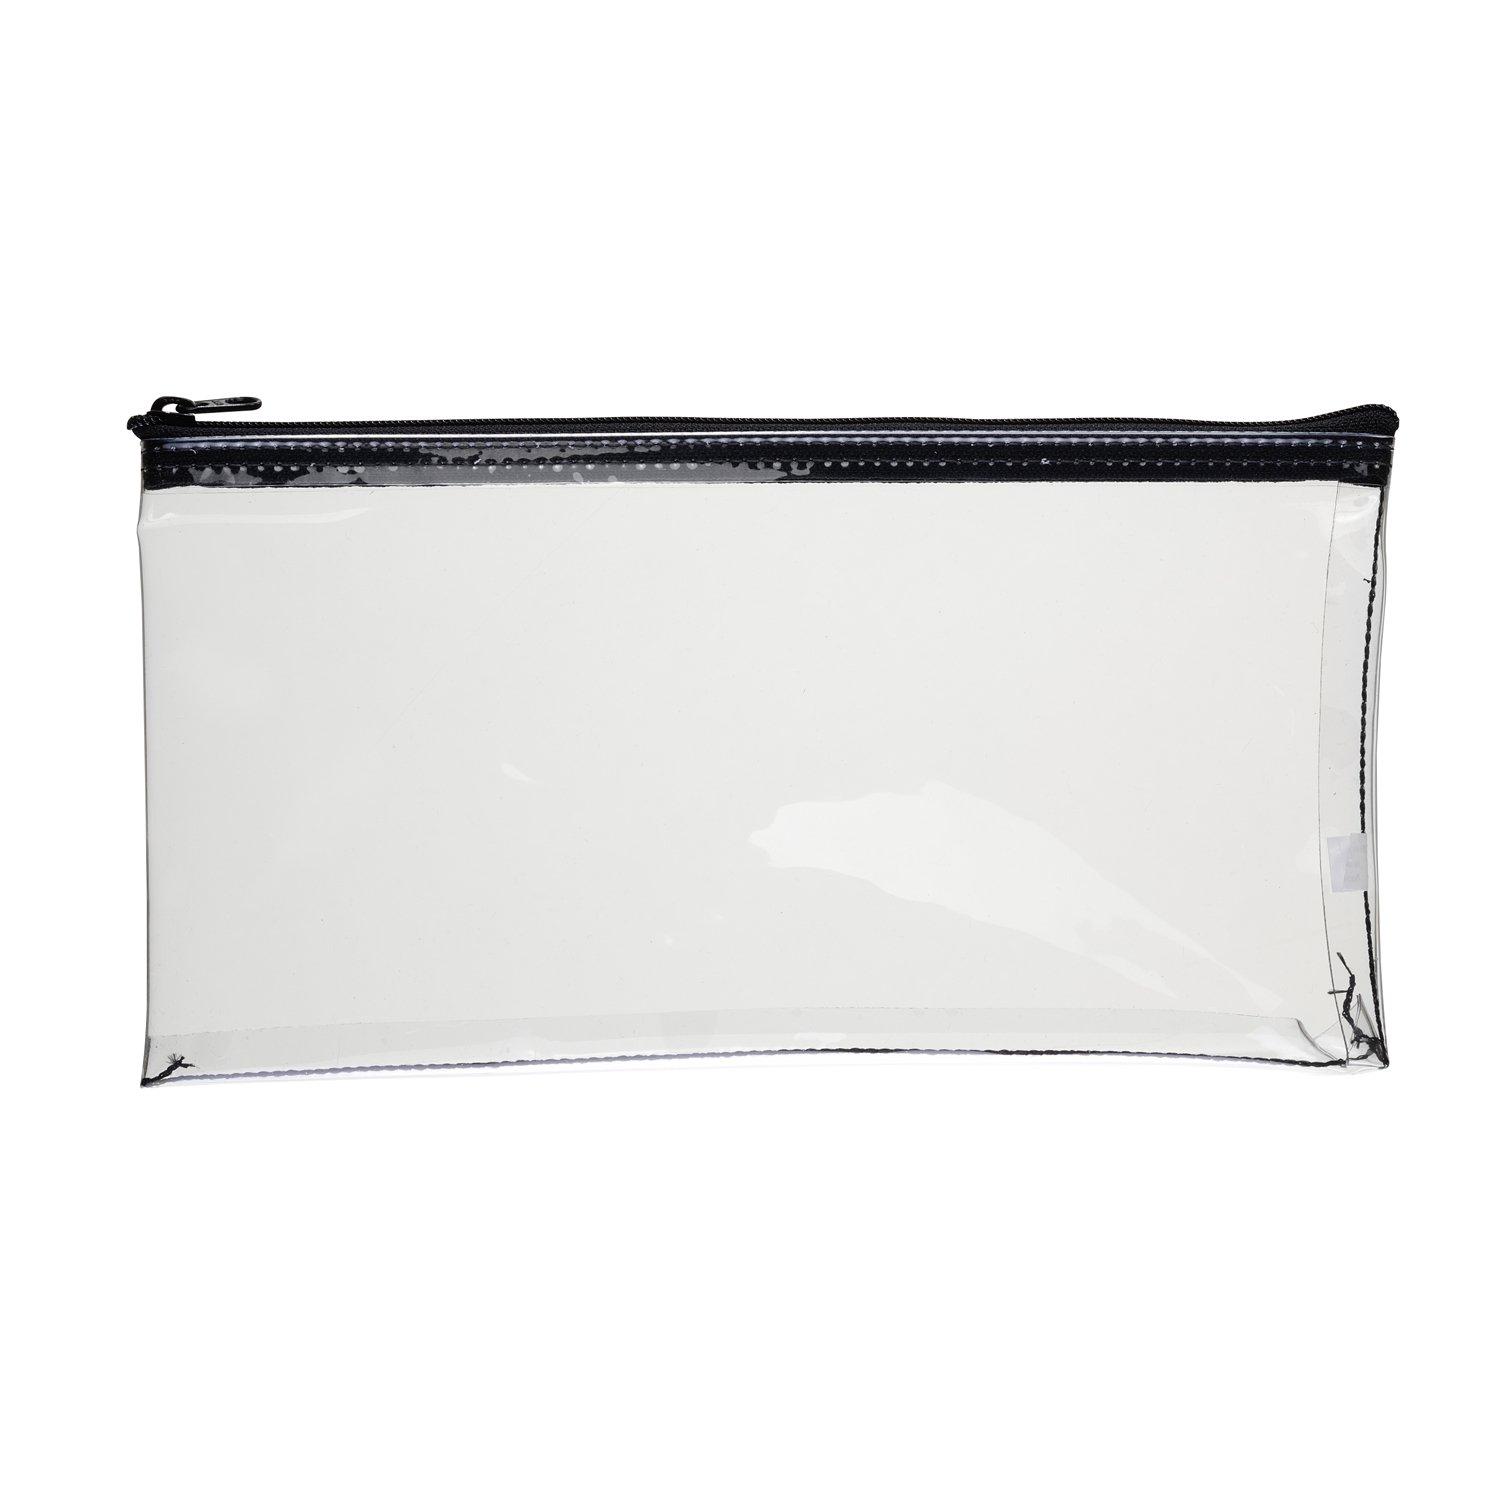 MMF Industries Zippered Cash Bag, 6 x 11 Inches, Clear (234041720R)